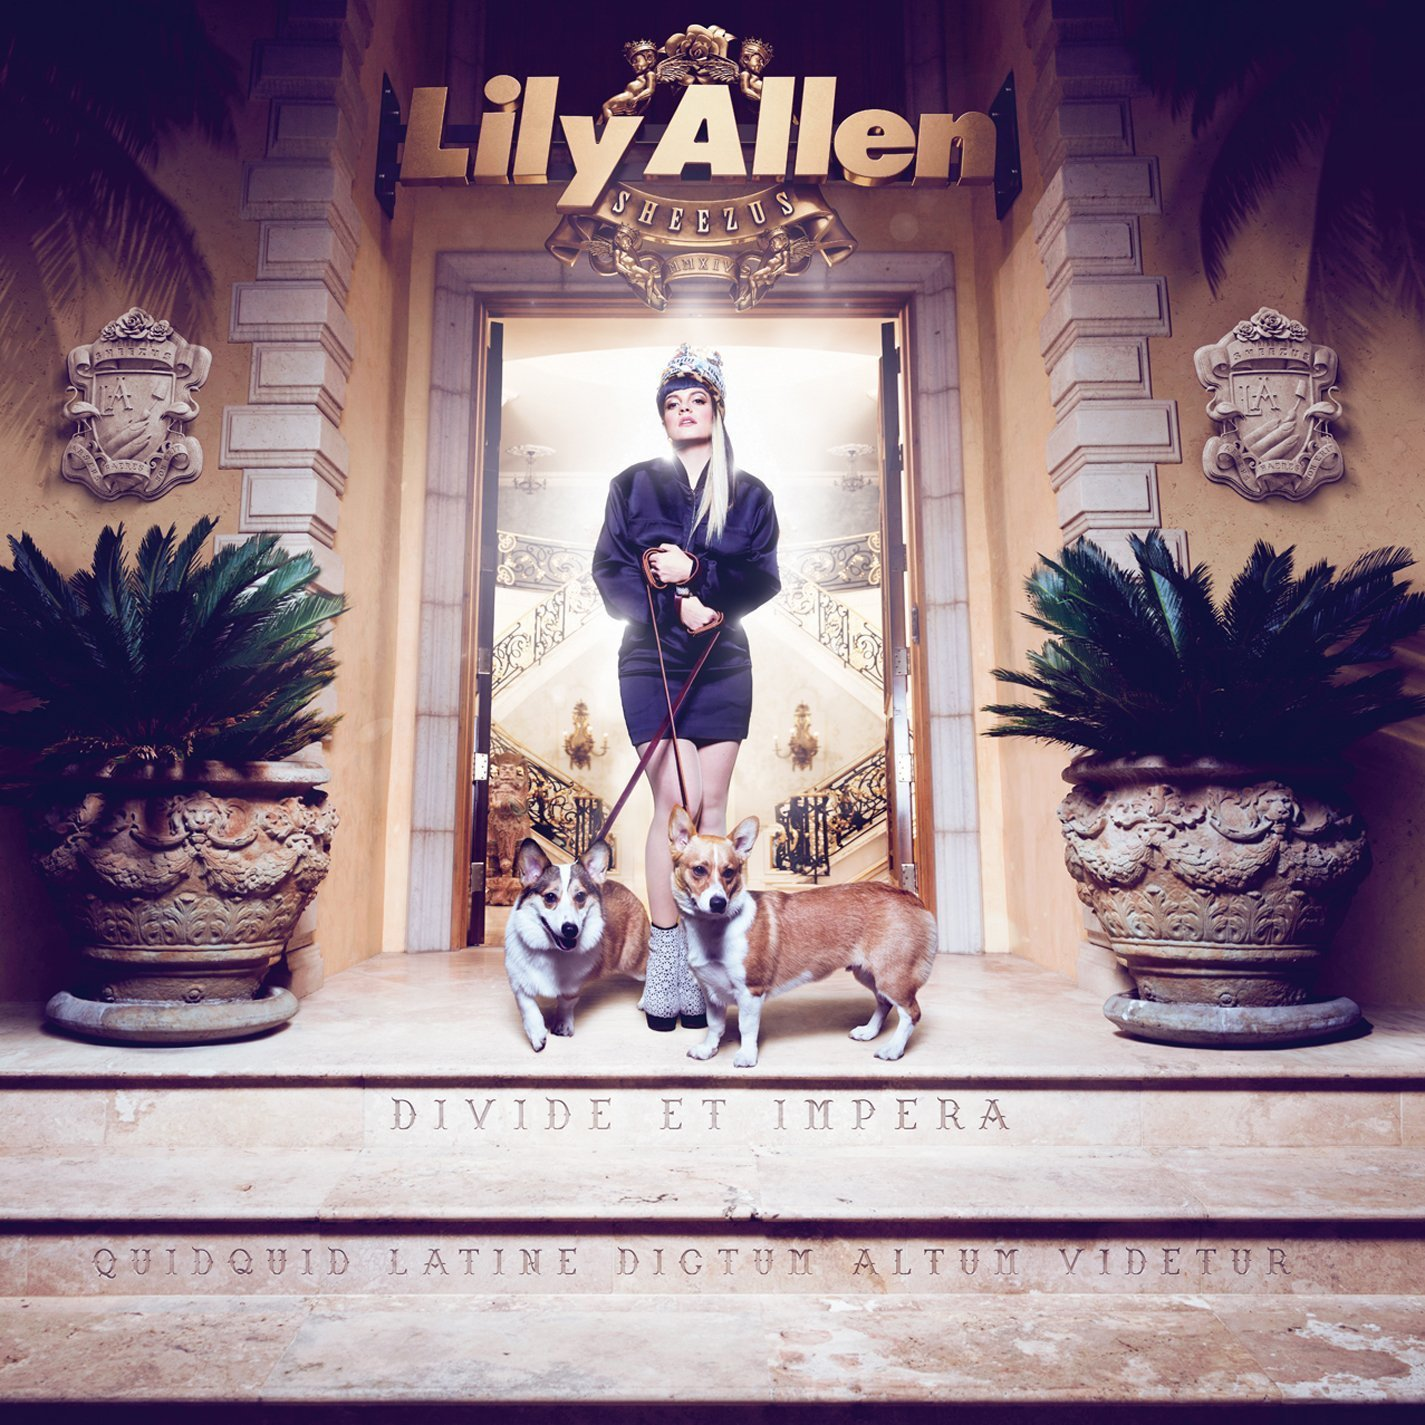 Lily Allen Attempts To Make An Artistic Statement On 'Sheezus'